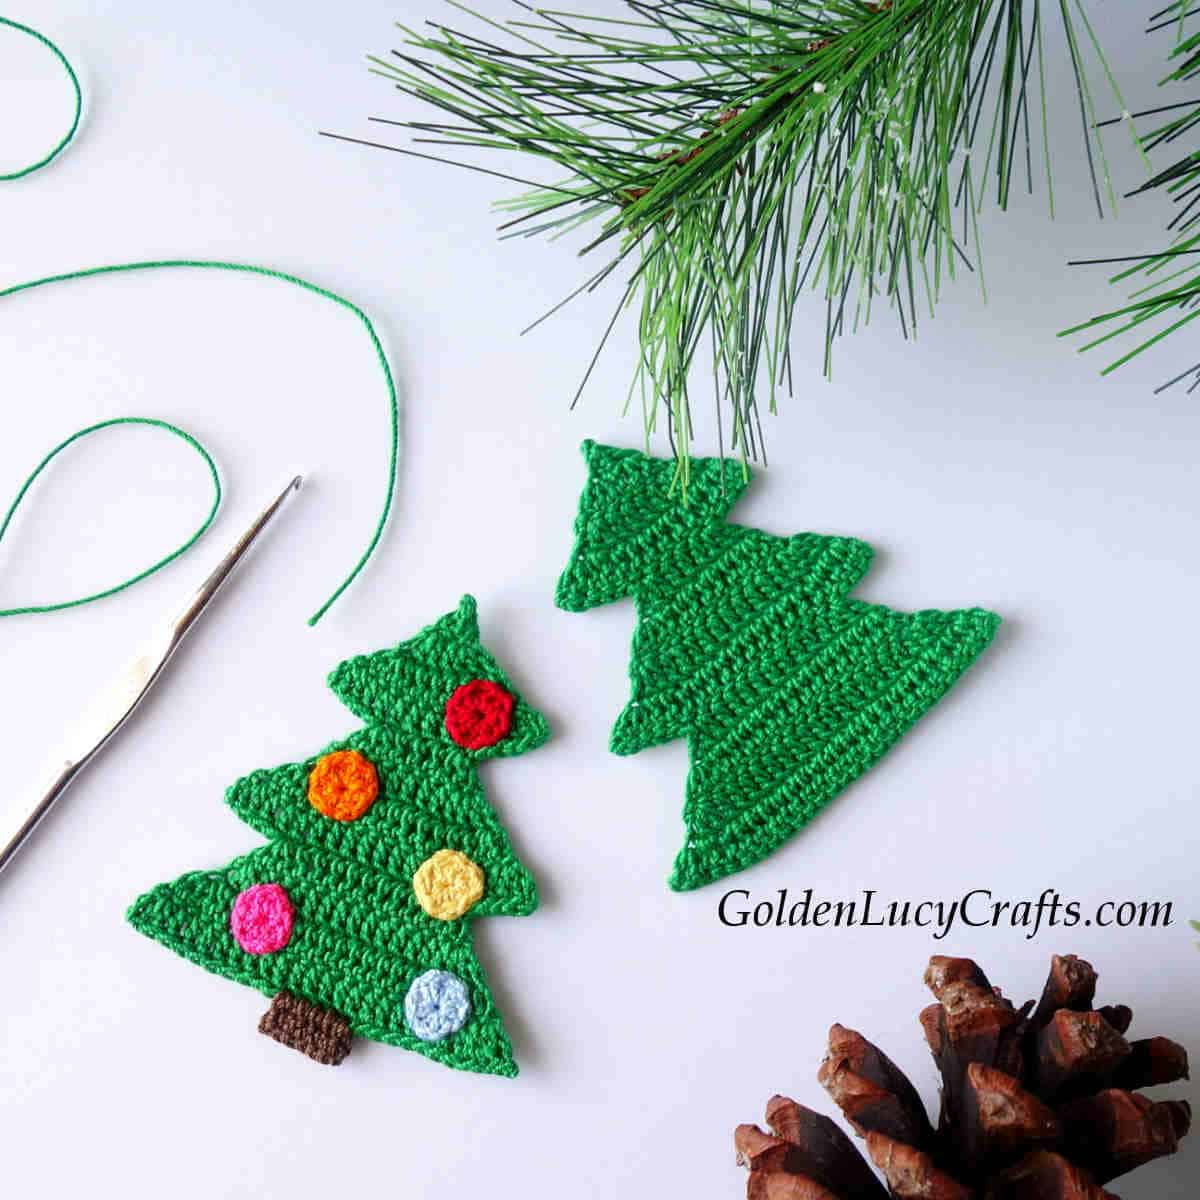 Two crocheted Christmas tree appliques.